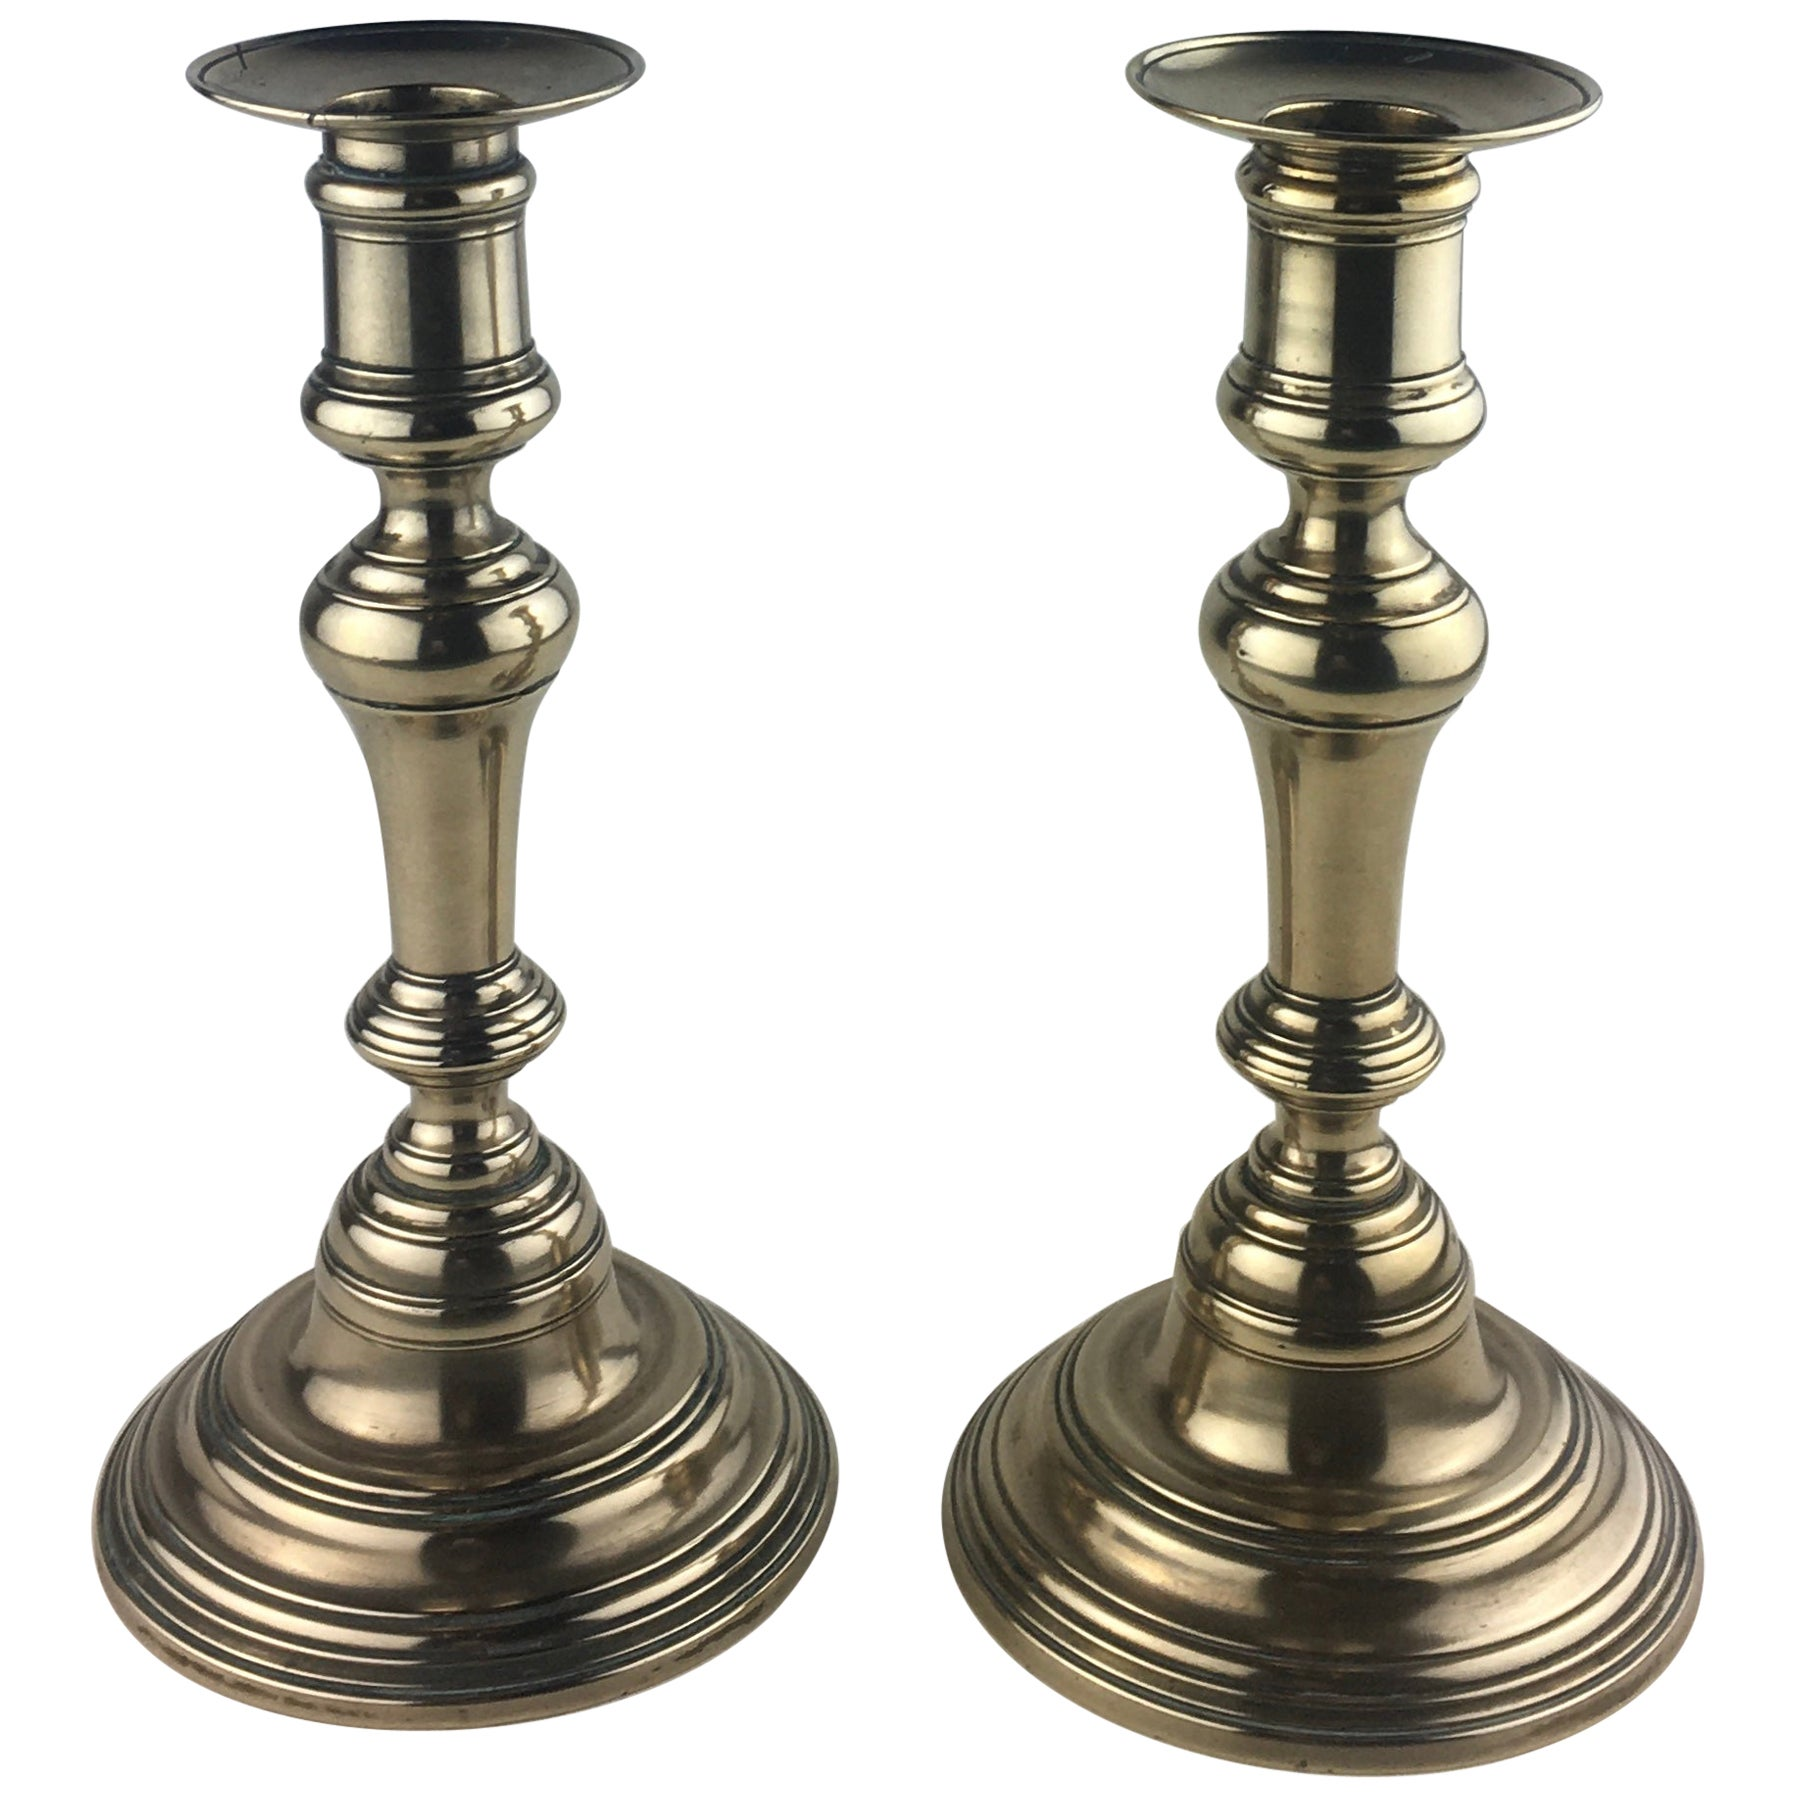 Pair of French Solid Brass Candlesticks